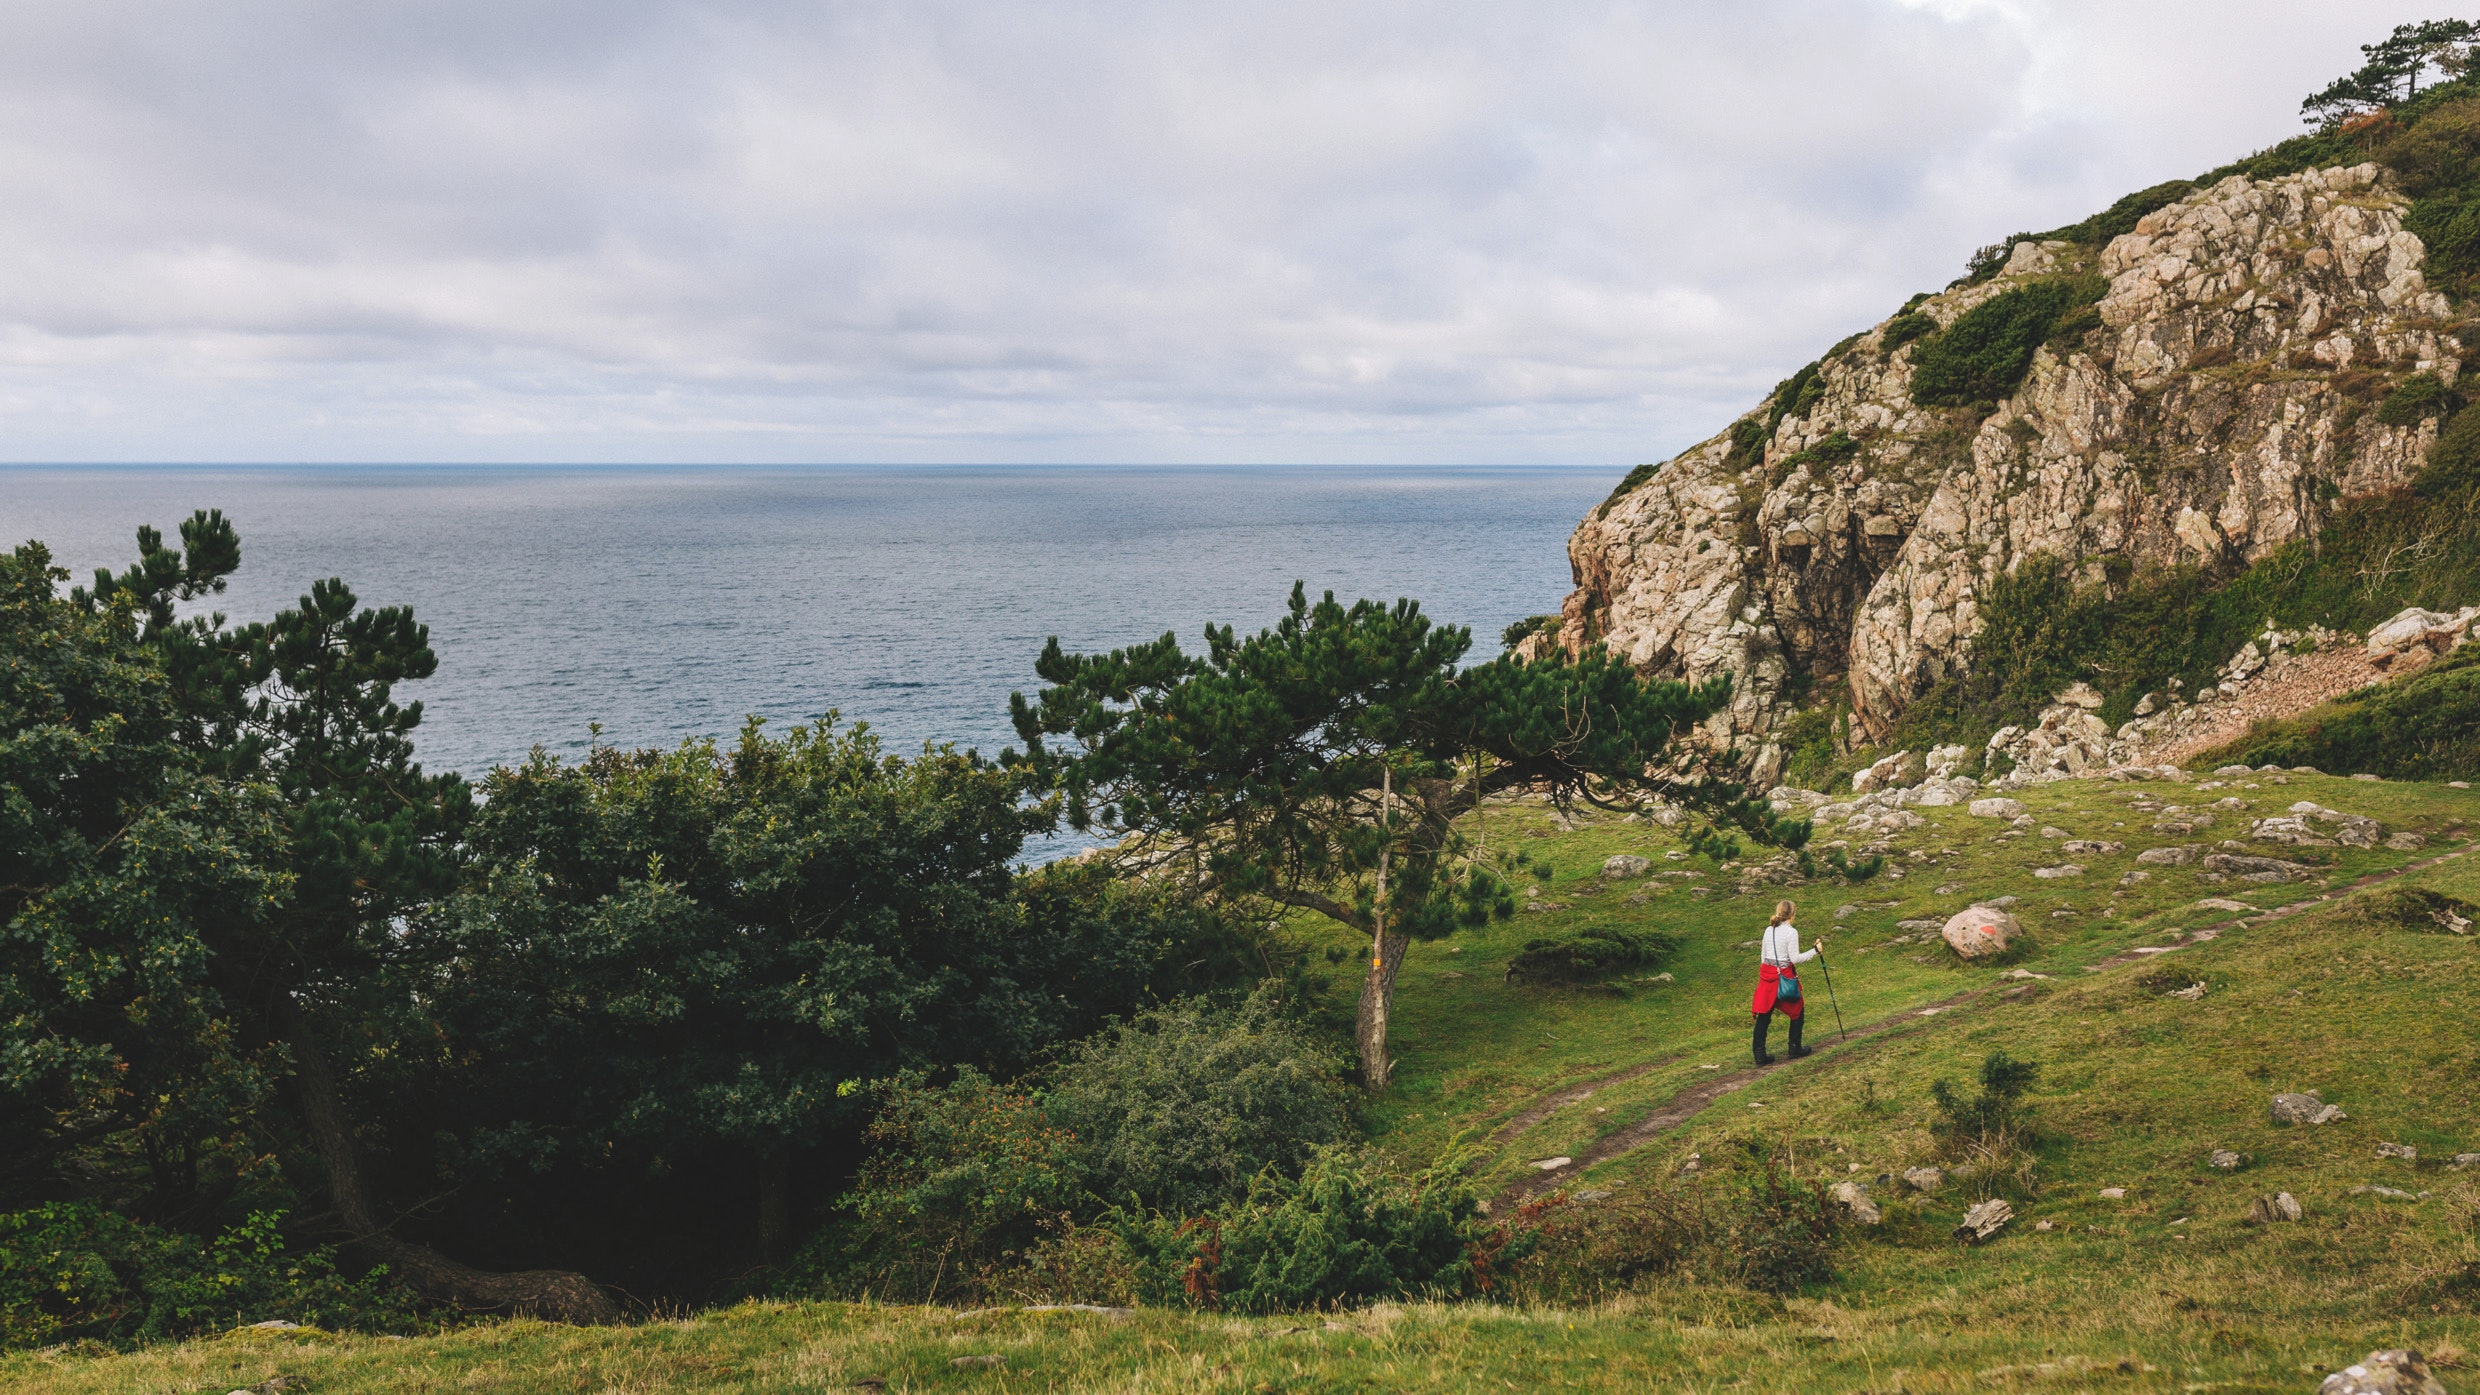 Immersing yourself in a place like southern Sweden's rocky coast is one of the best ways to get to know the country.